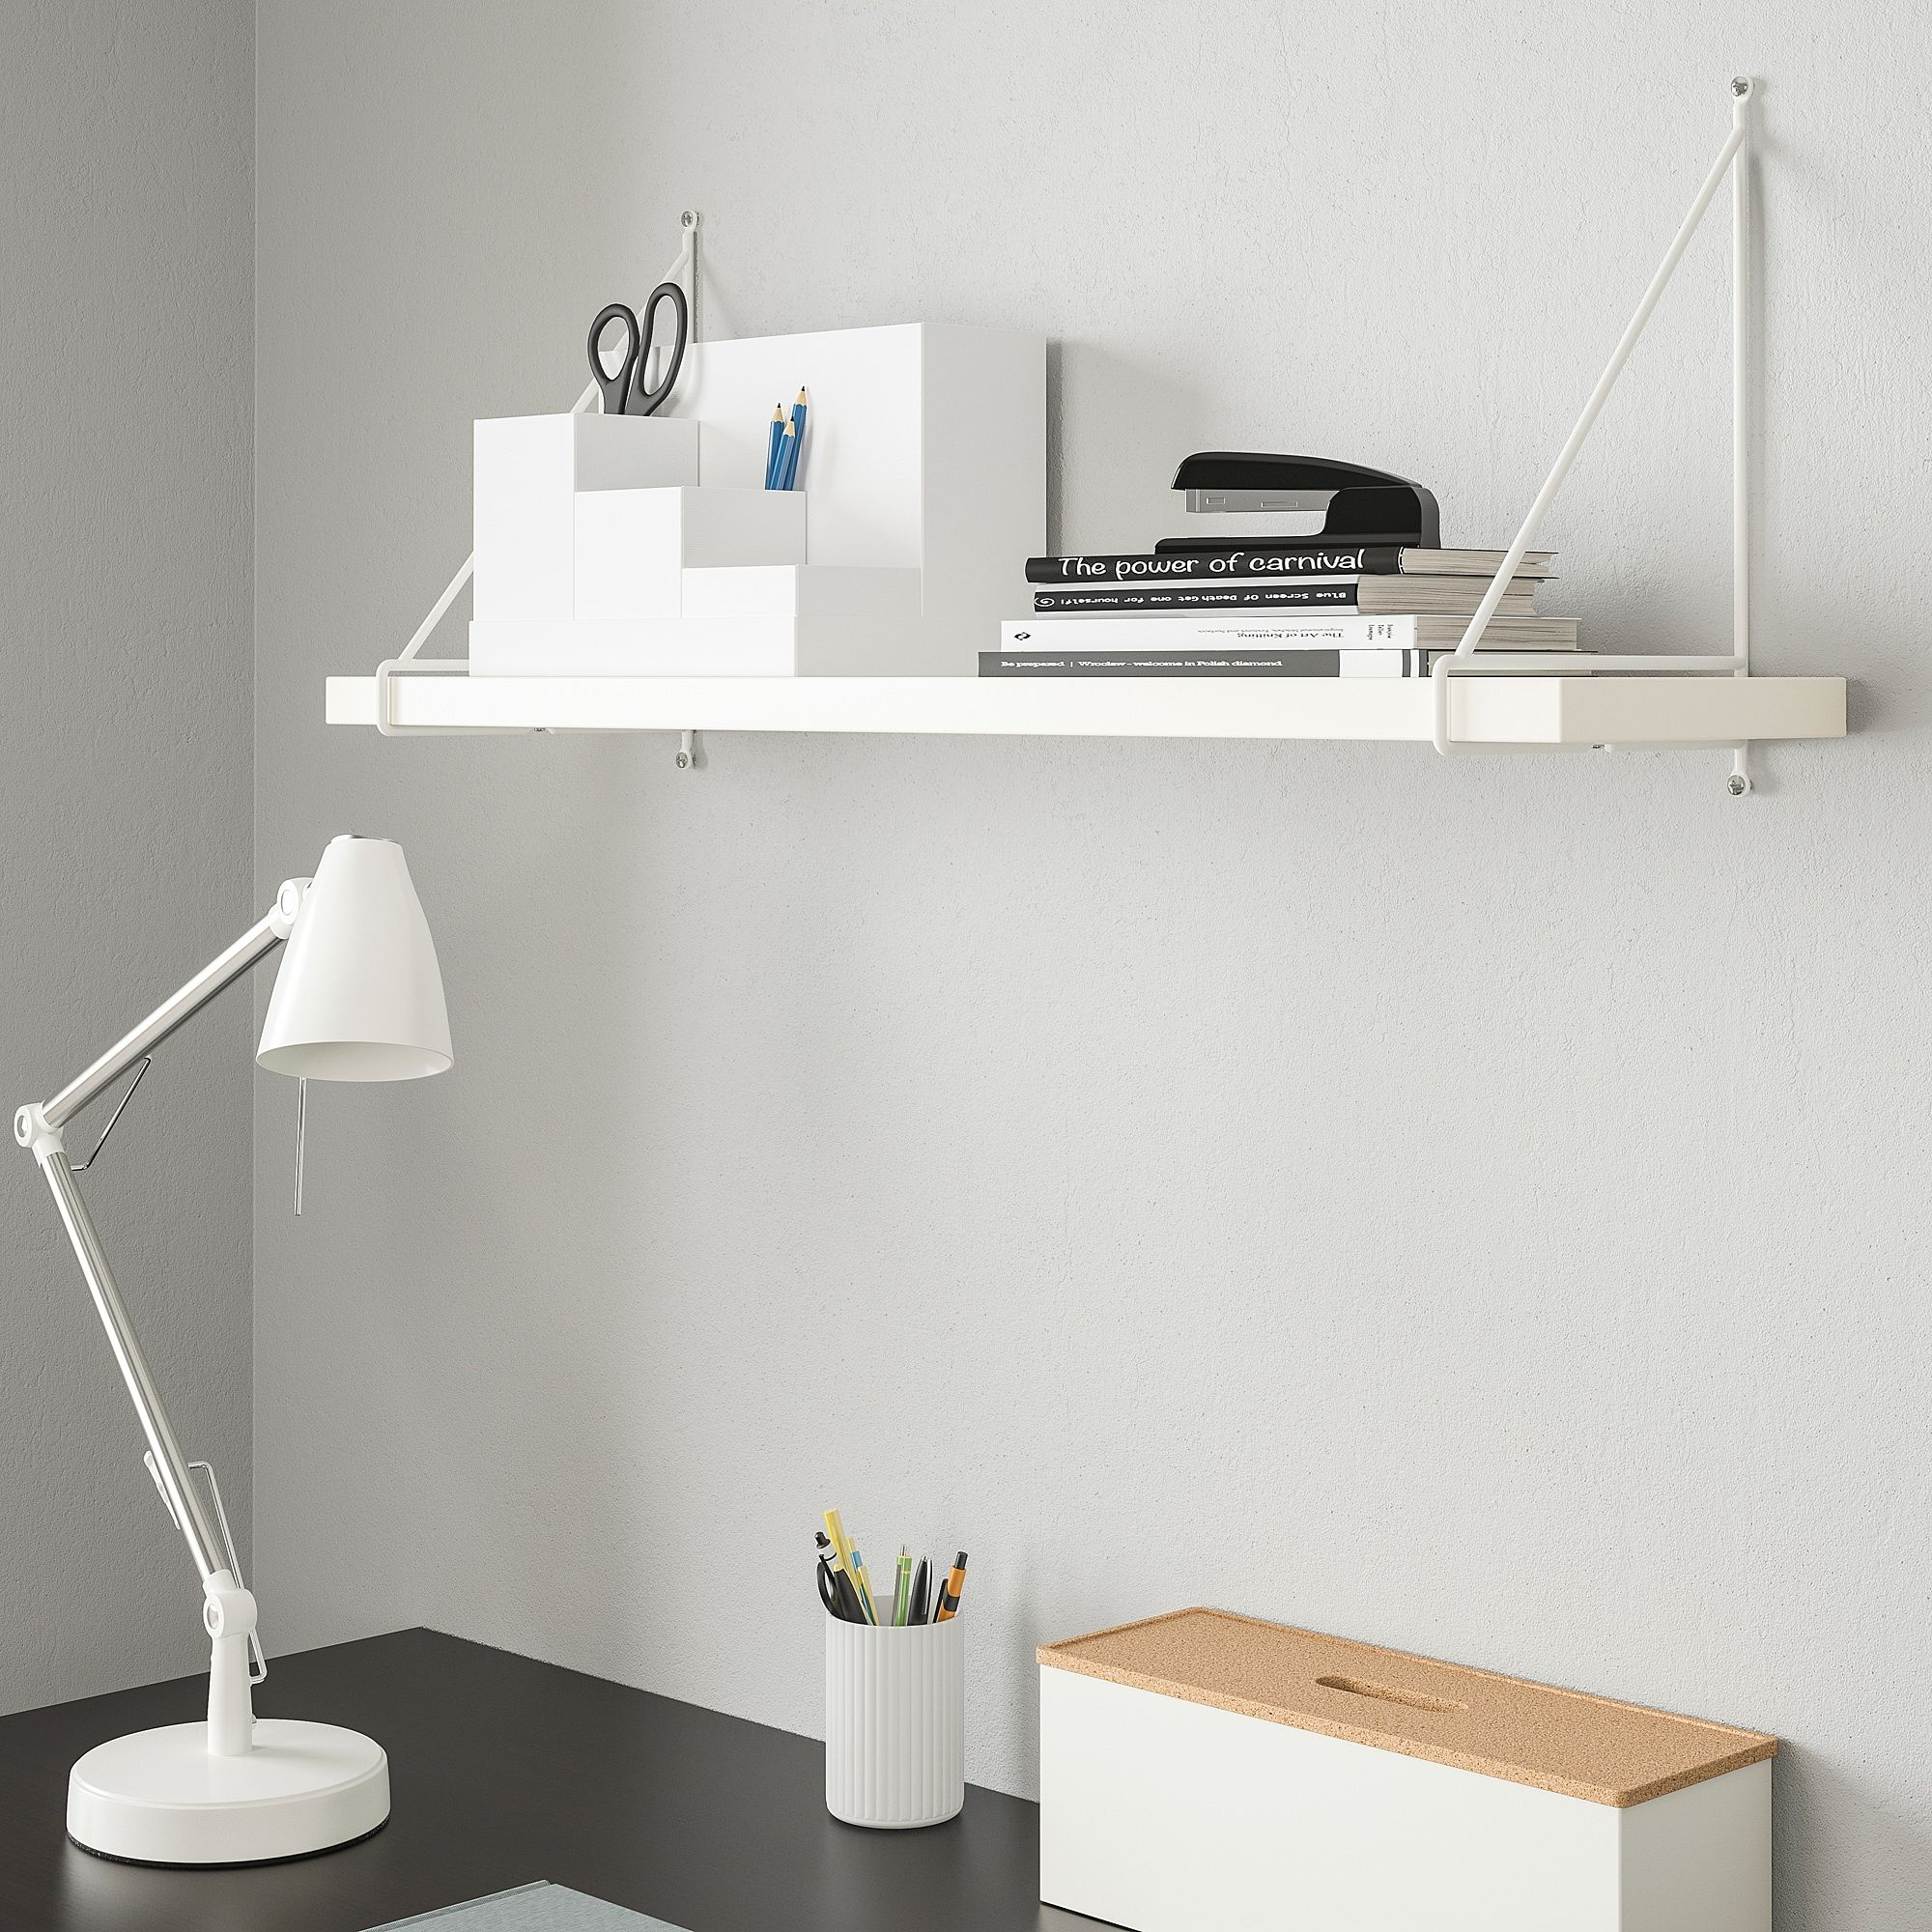 Pershult Konsole Weiss Ikea Osterreich Wall Shelves White Wall Shelves Shelves